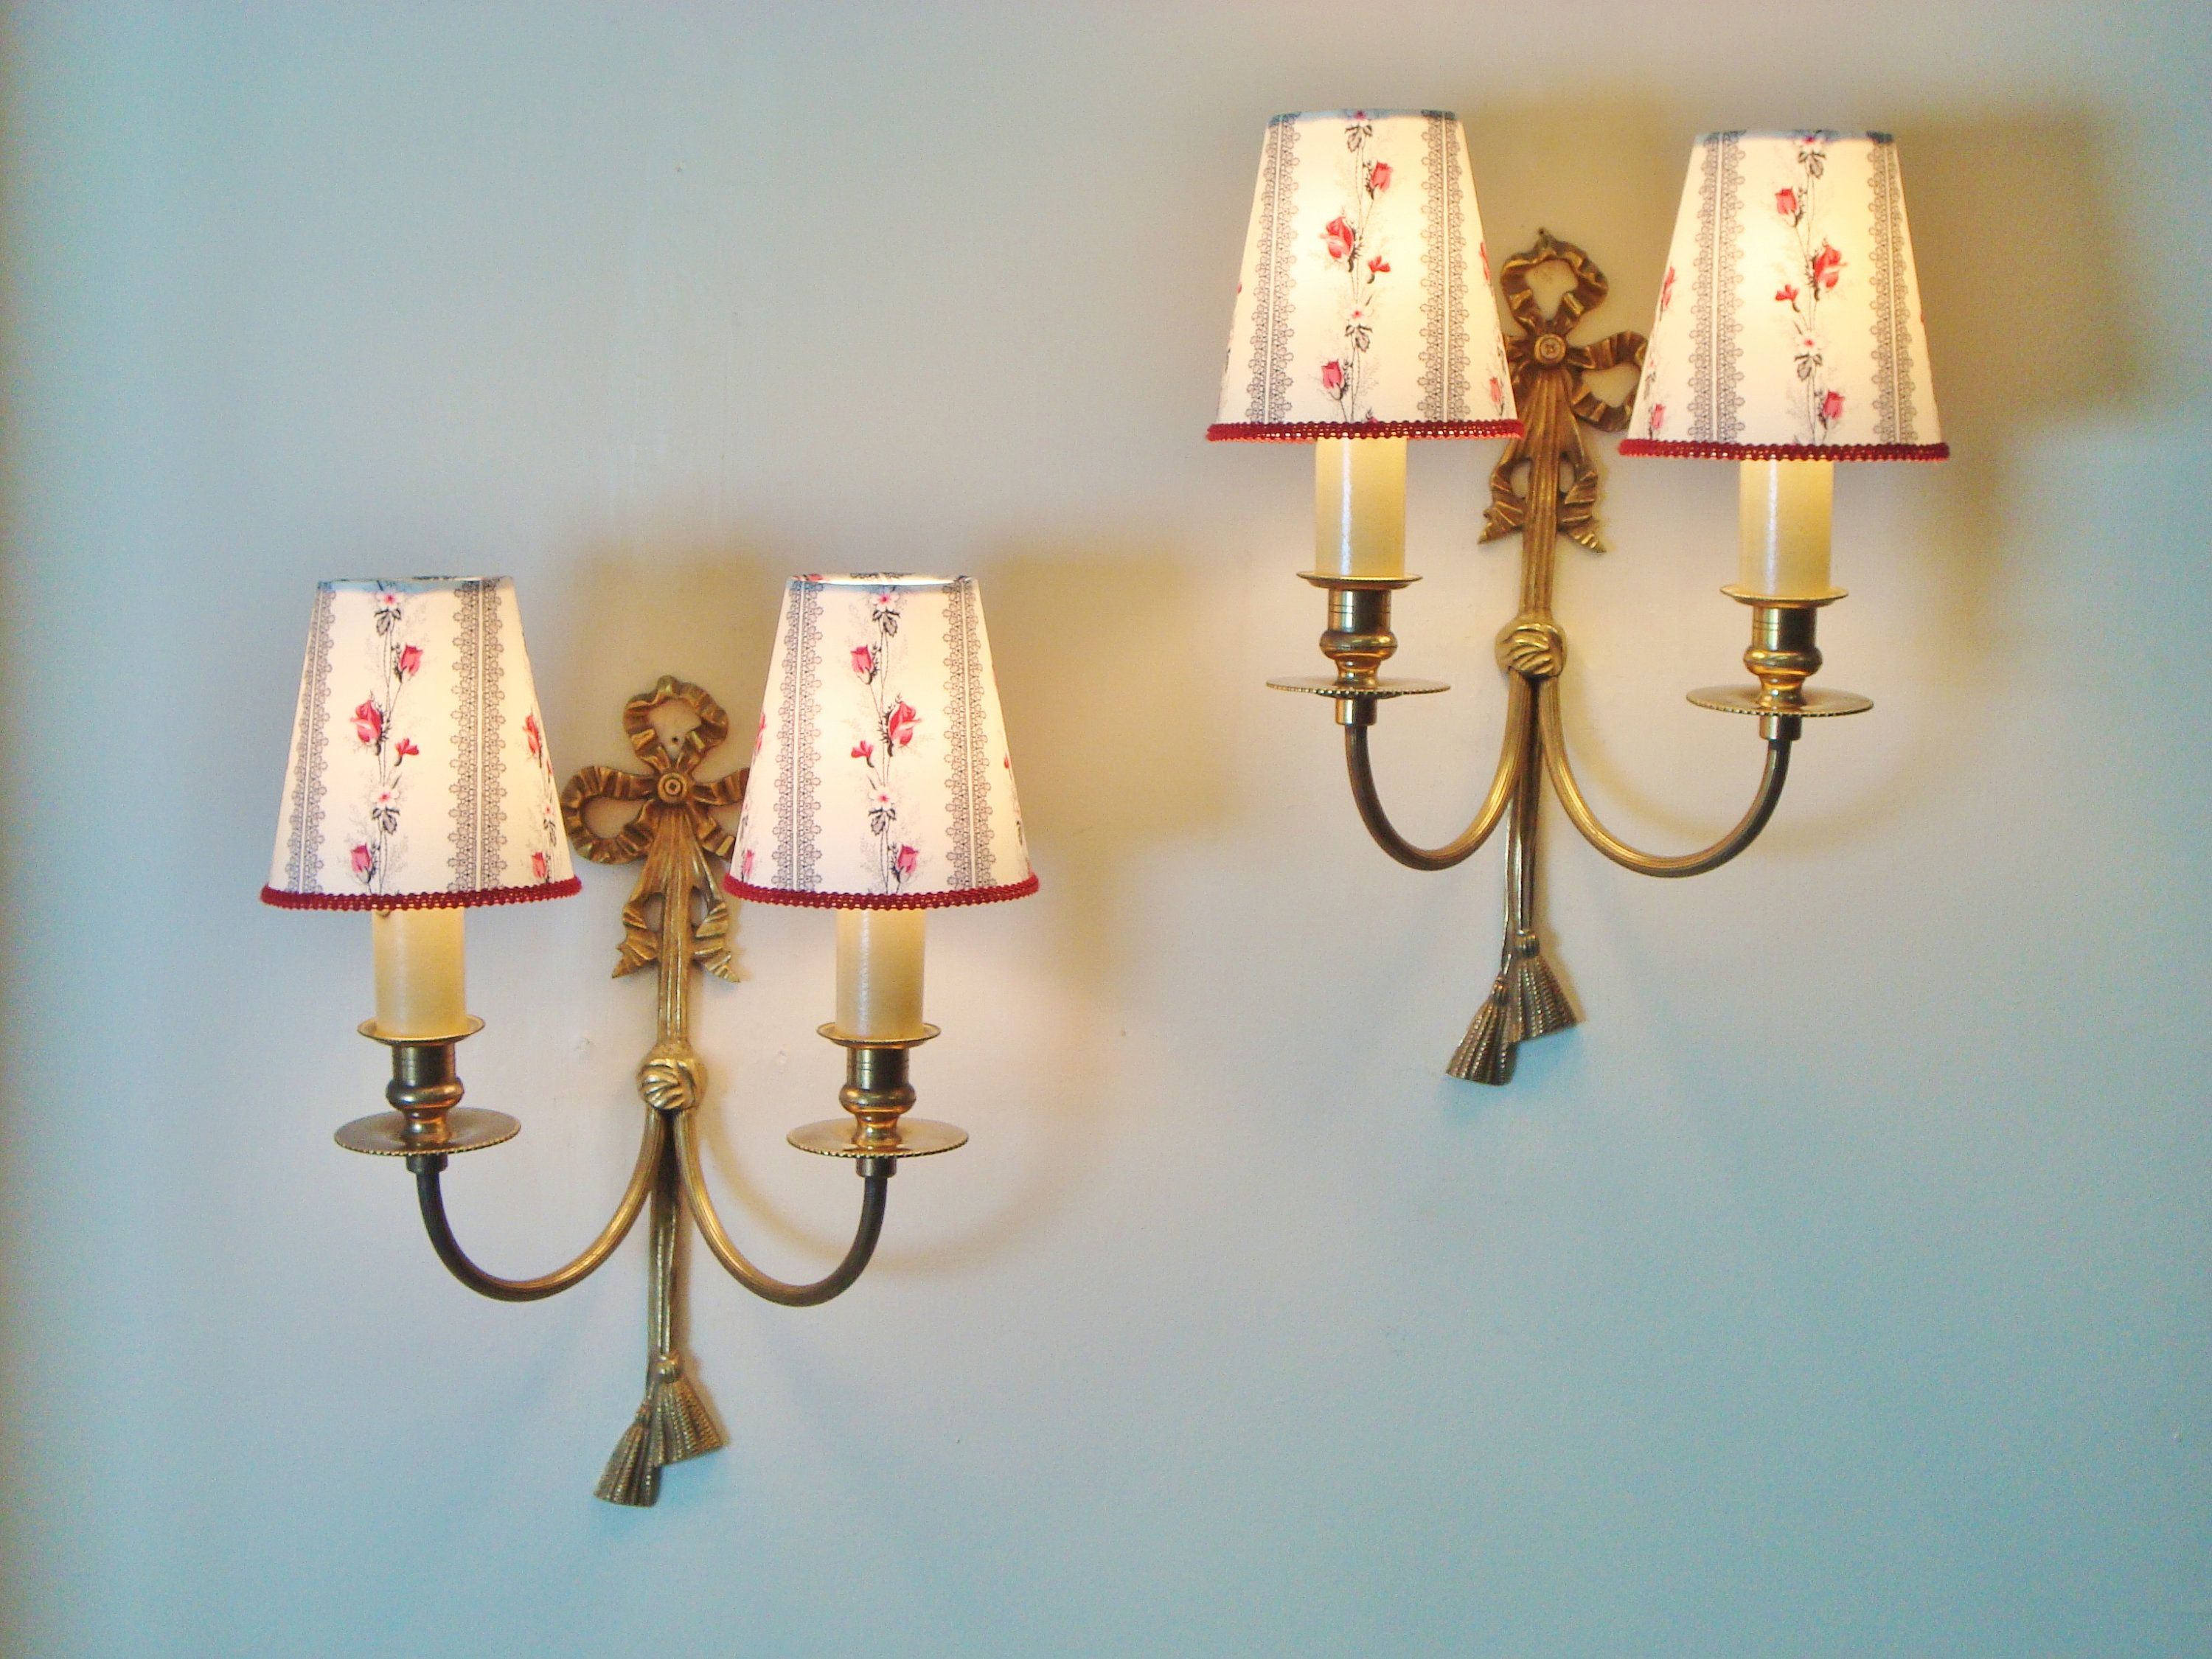 Vintage Ribbon Sconces With A Set Of Handmade Rosebud Lampshades Made From A 1950 S Fabric In 2020 Lampshades Sconces Vintage Ribbon